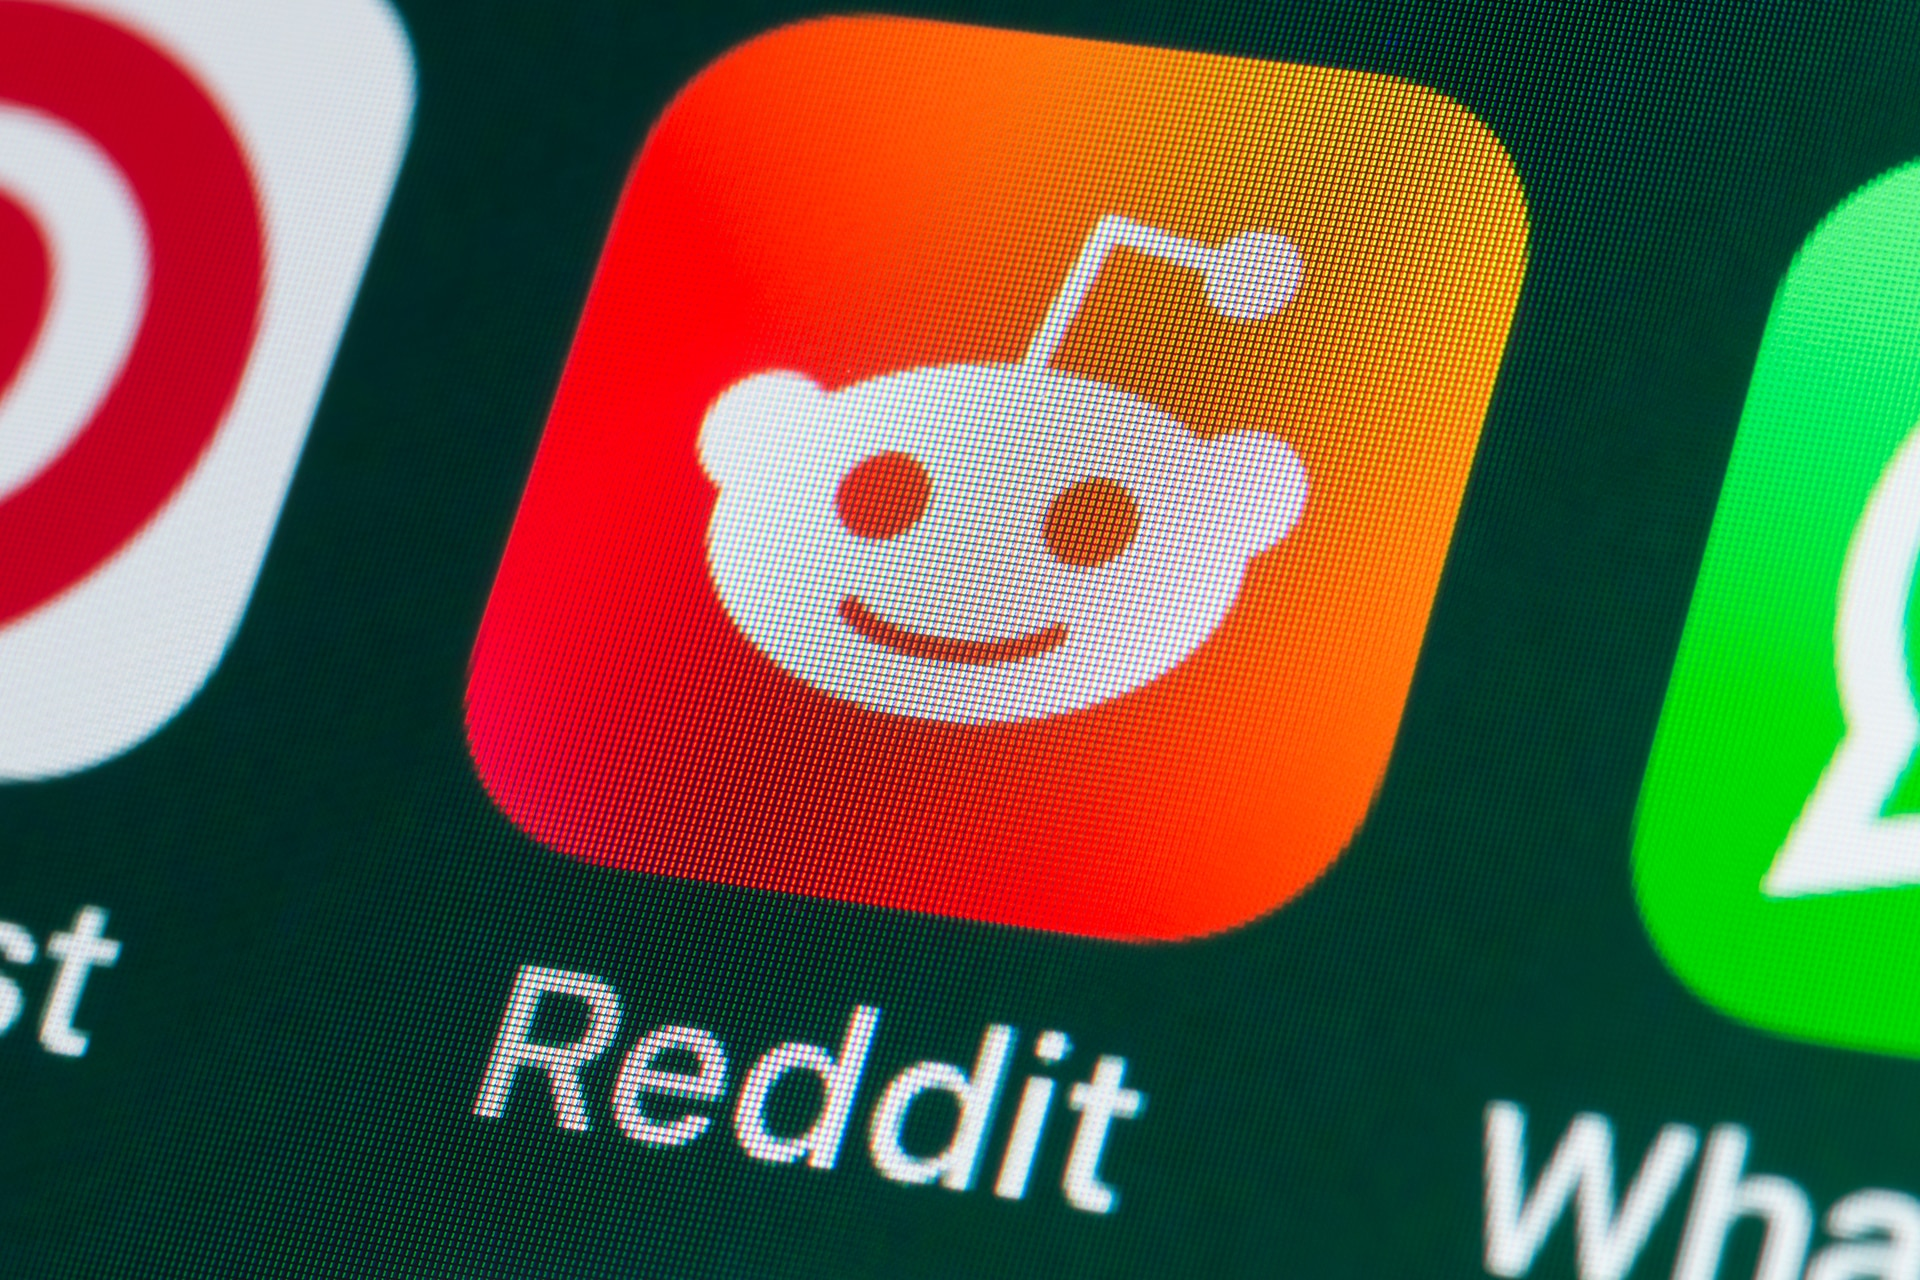 e8c80c8227c It Was Once A Beacon Of Authenticity, But Now Reddit Seems To Be Moving  Away From Its Free Speech Roots